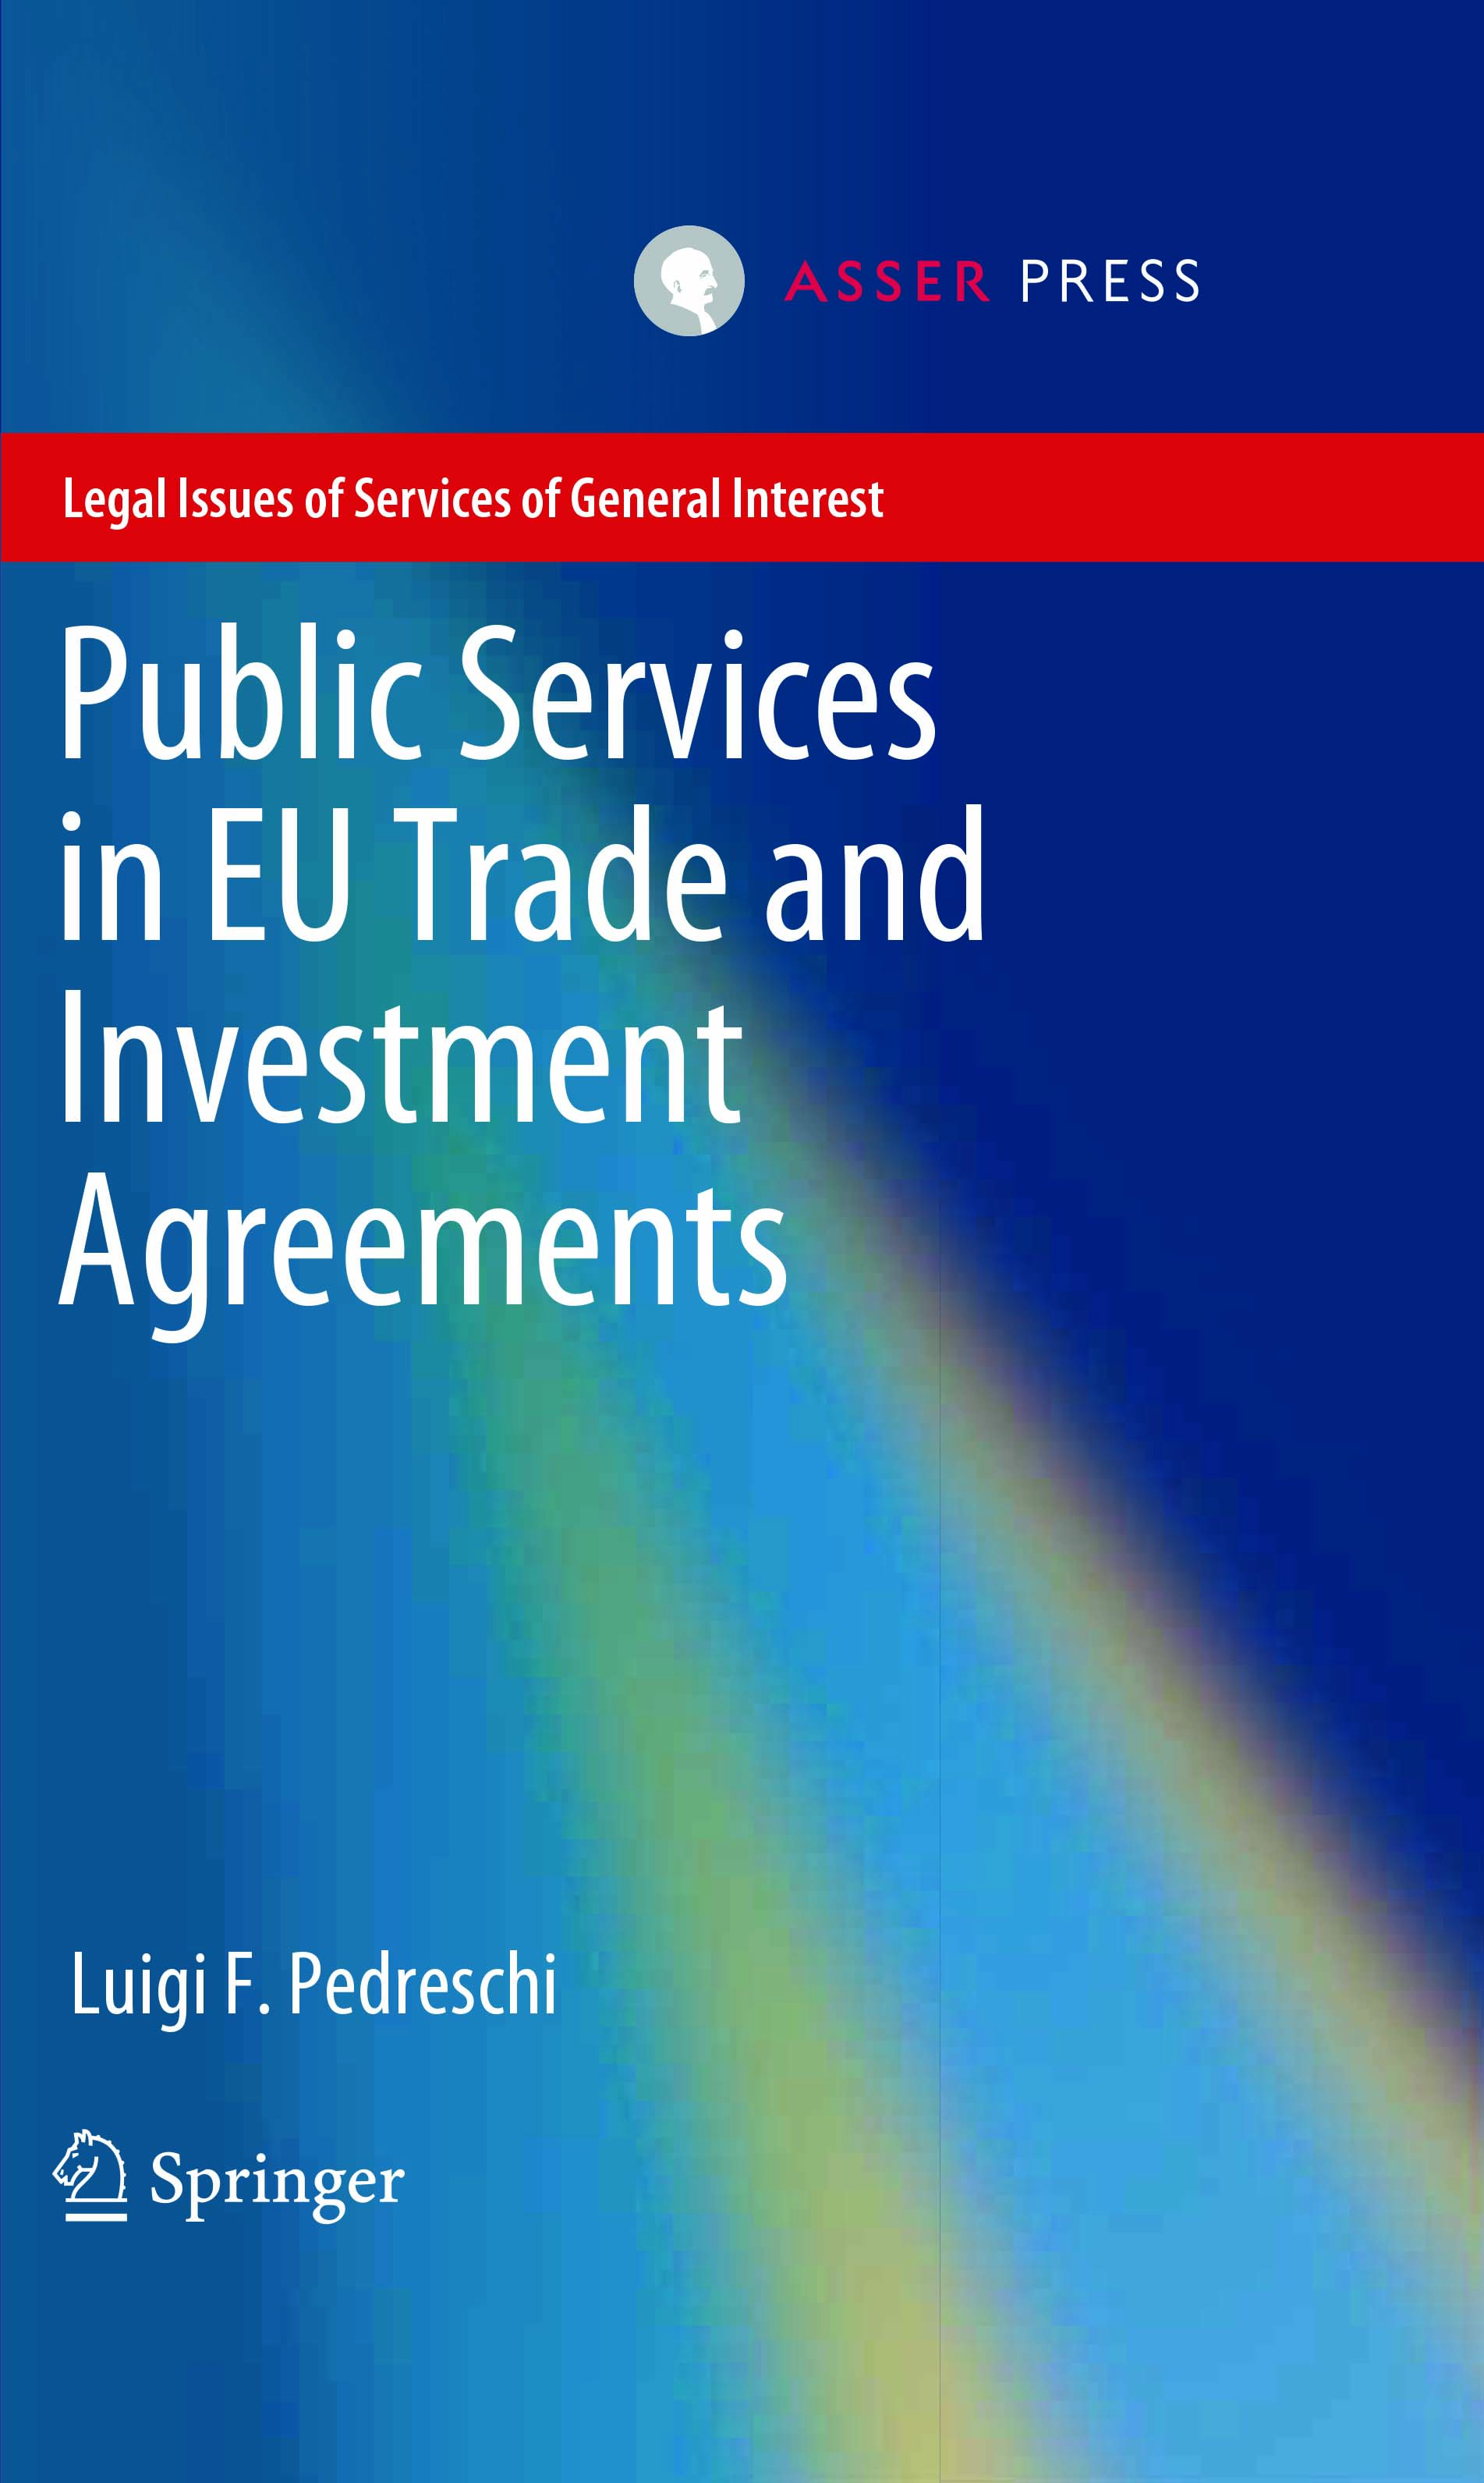 Public Services in EU Trade and Investment Agreements